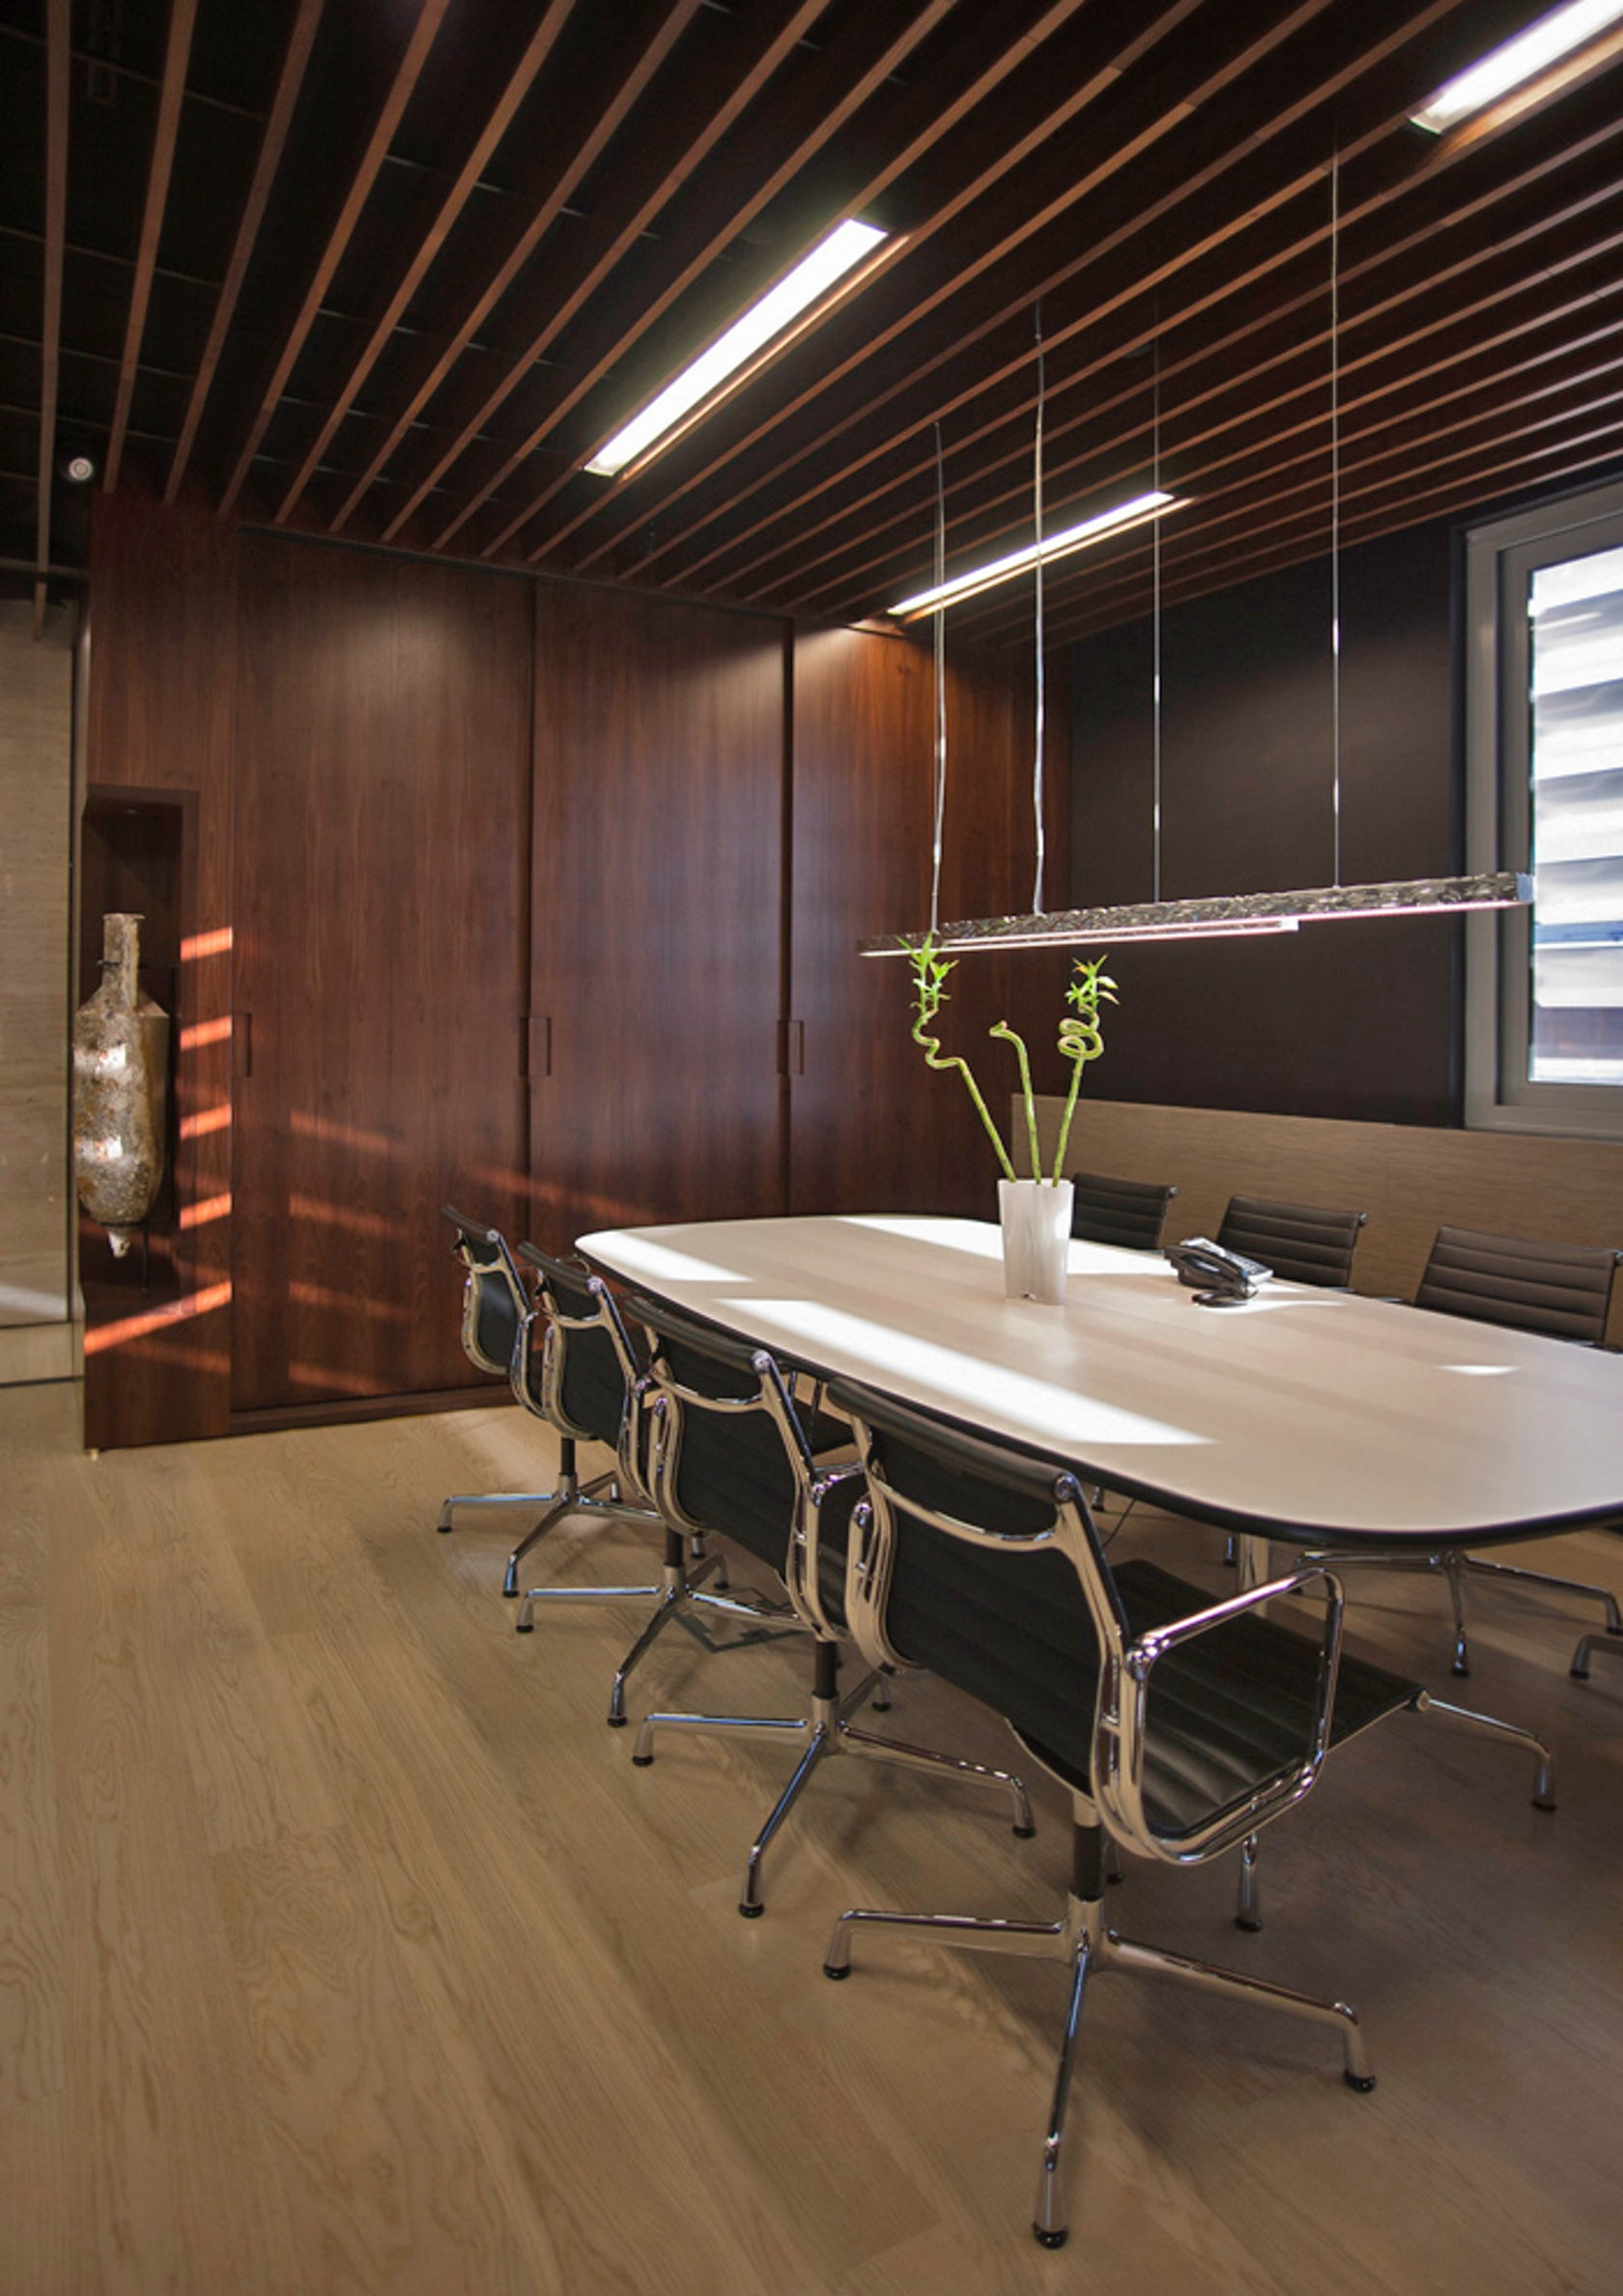 Conference Room Lighting Design: Law Office Interior